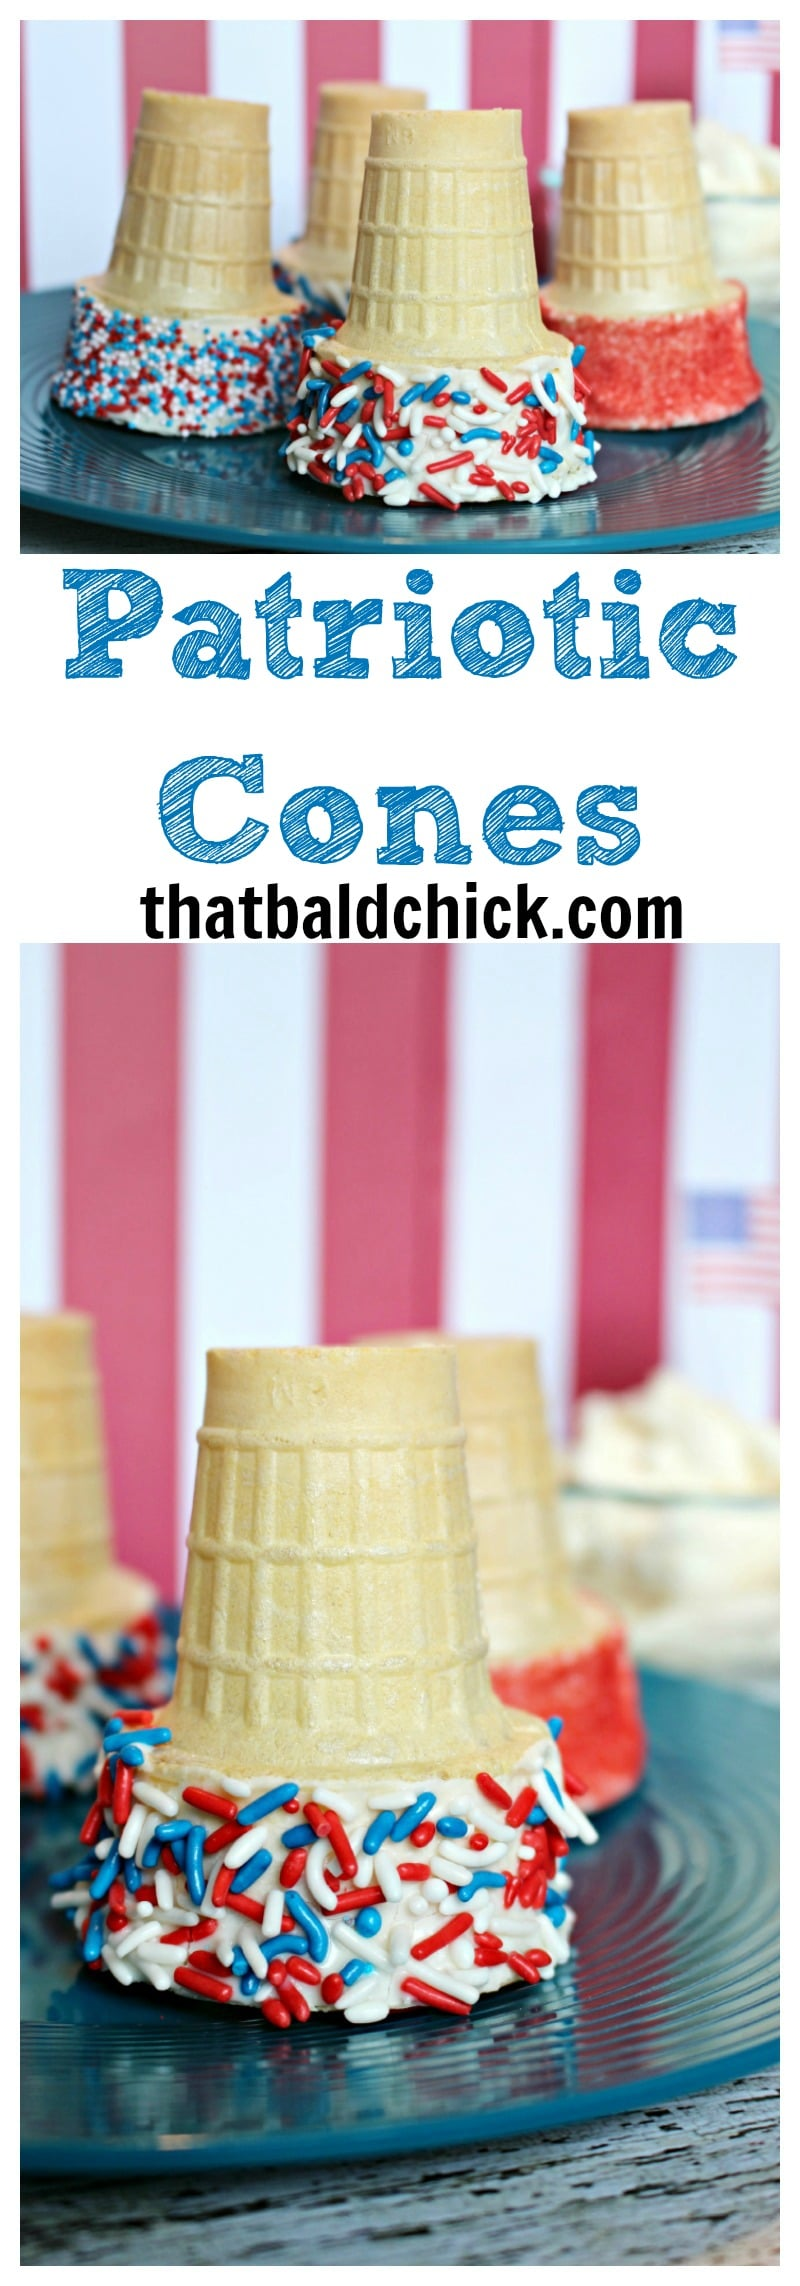 Make these Patriotic Cones for your Memorial Day, 4th of July, or Labor Day celebrations. There's even a gluten free option! Directions at thatbaldchick.com